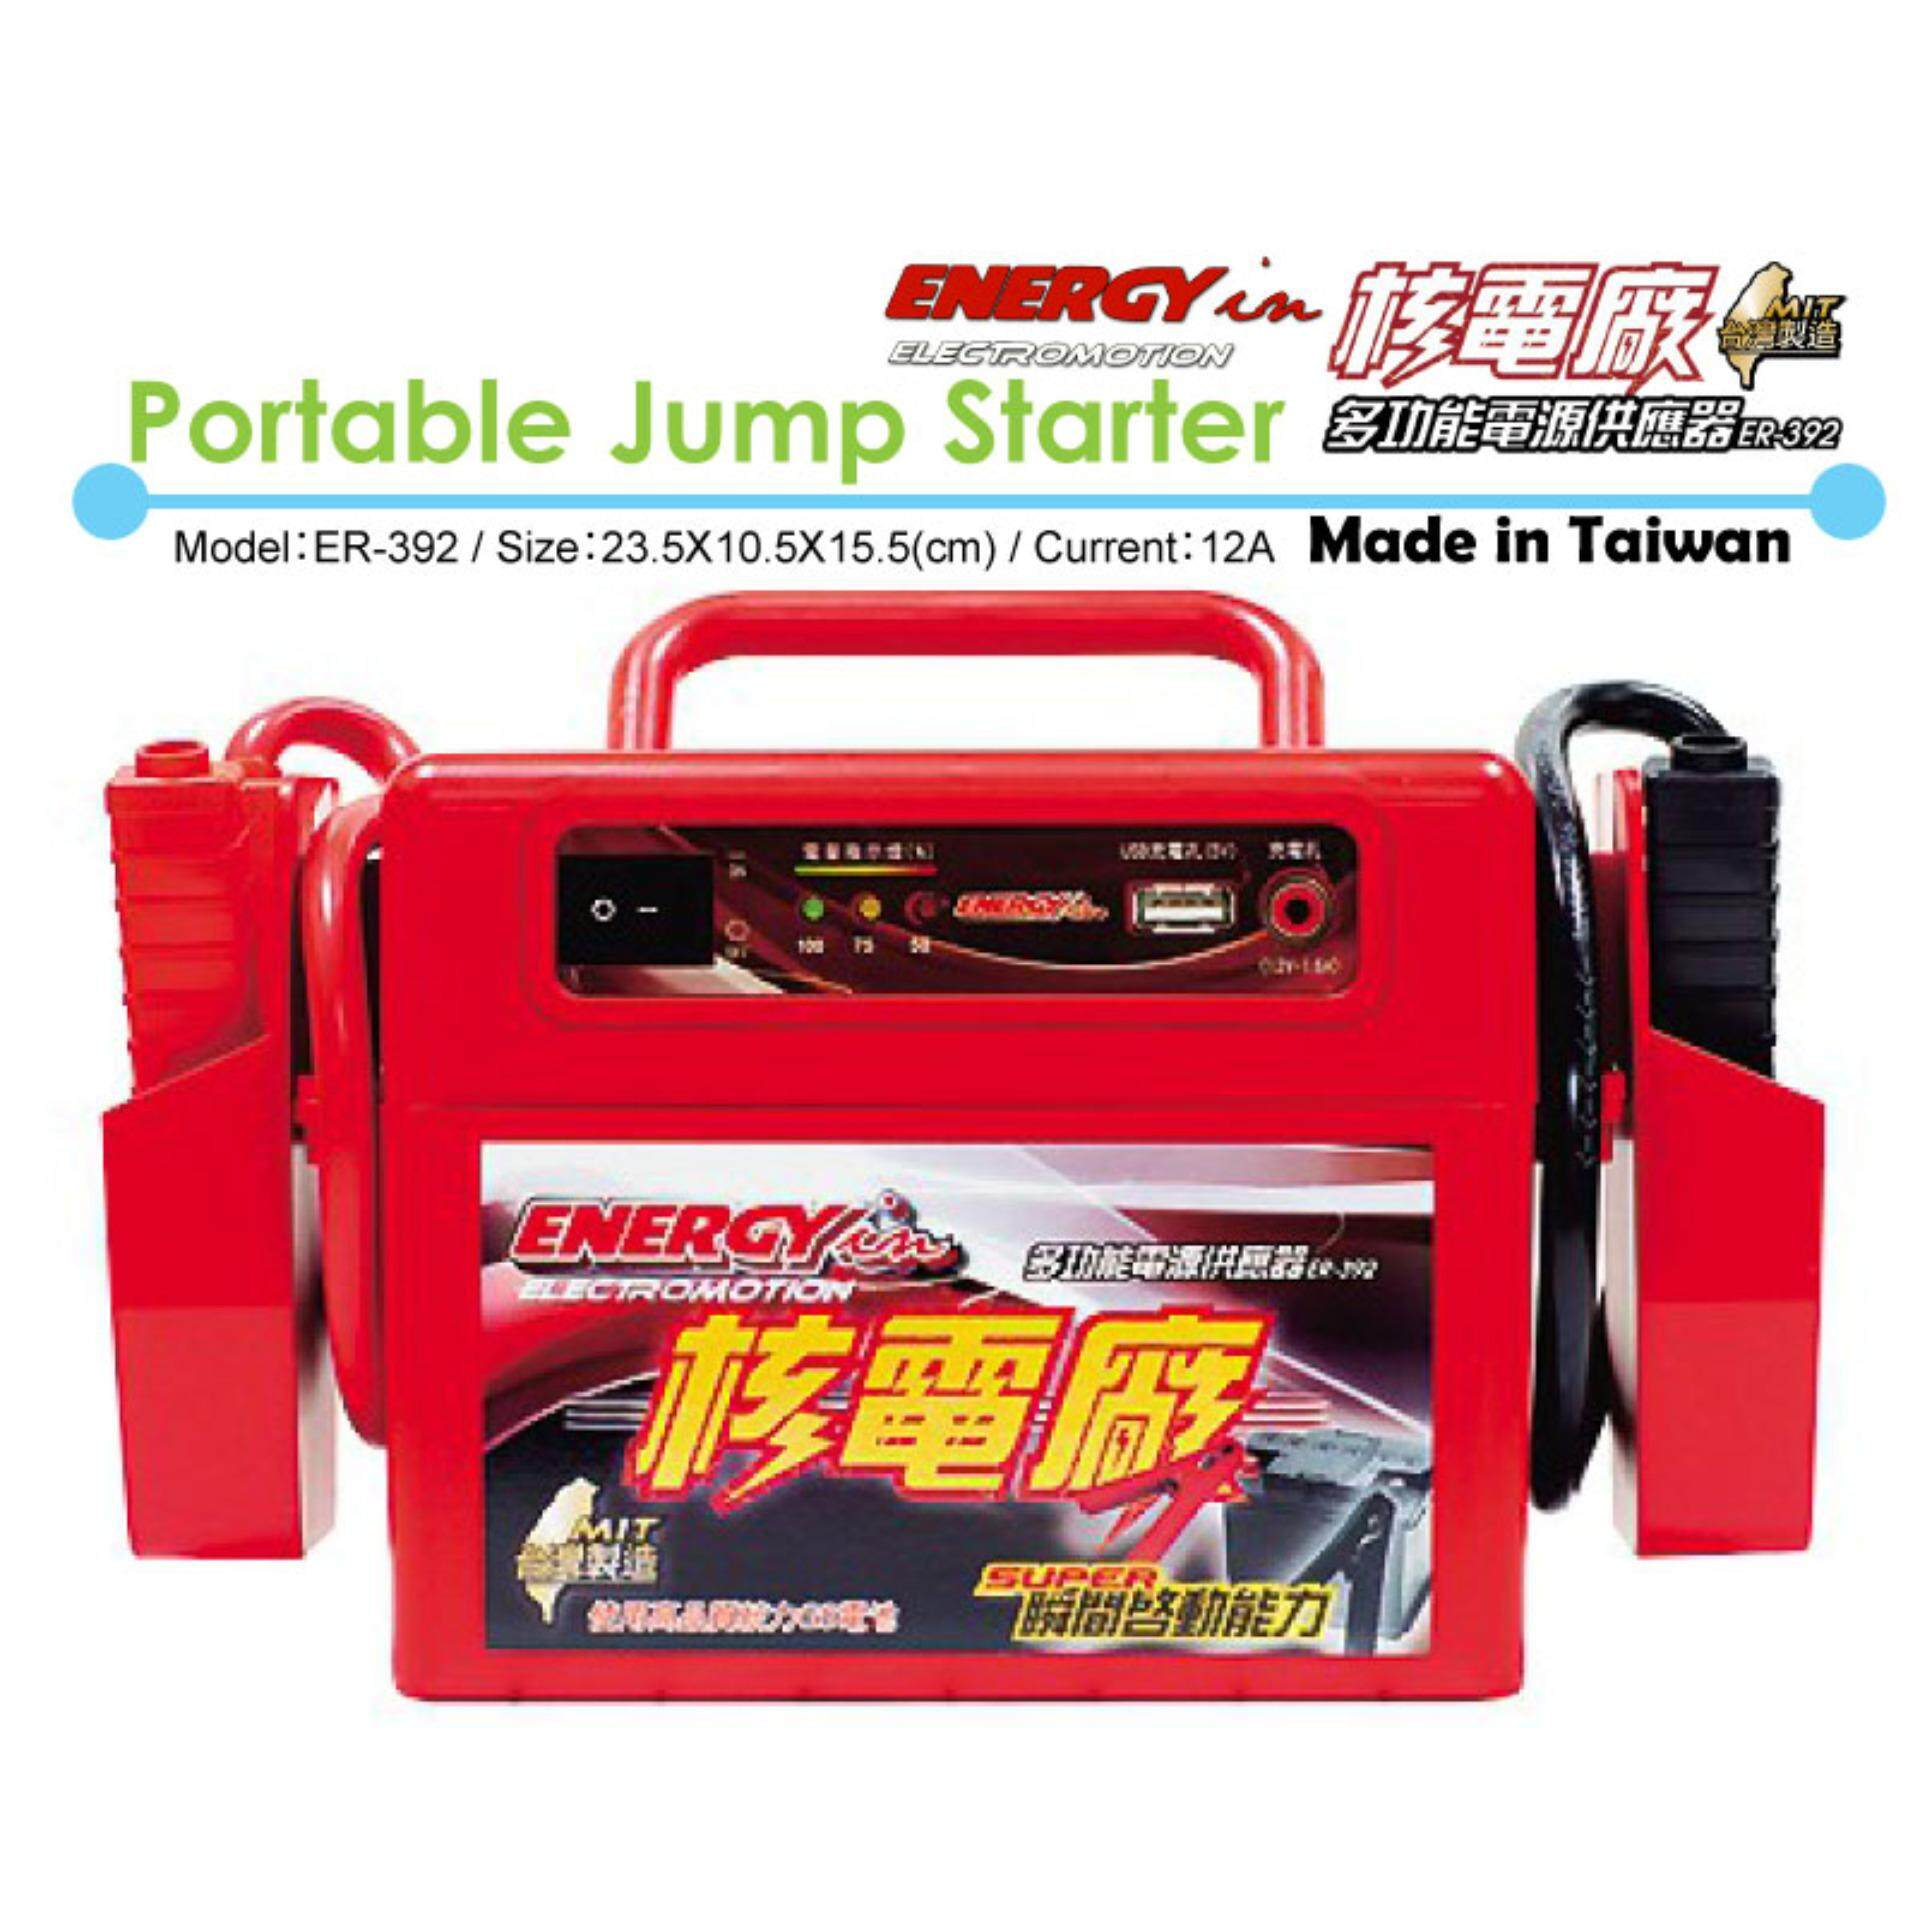 Energy in Electromotion 12V Vehicle Portable Jump Starter Car Battery Starter Booster ER-392